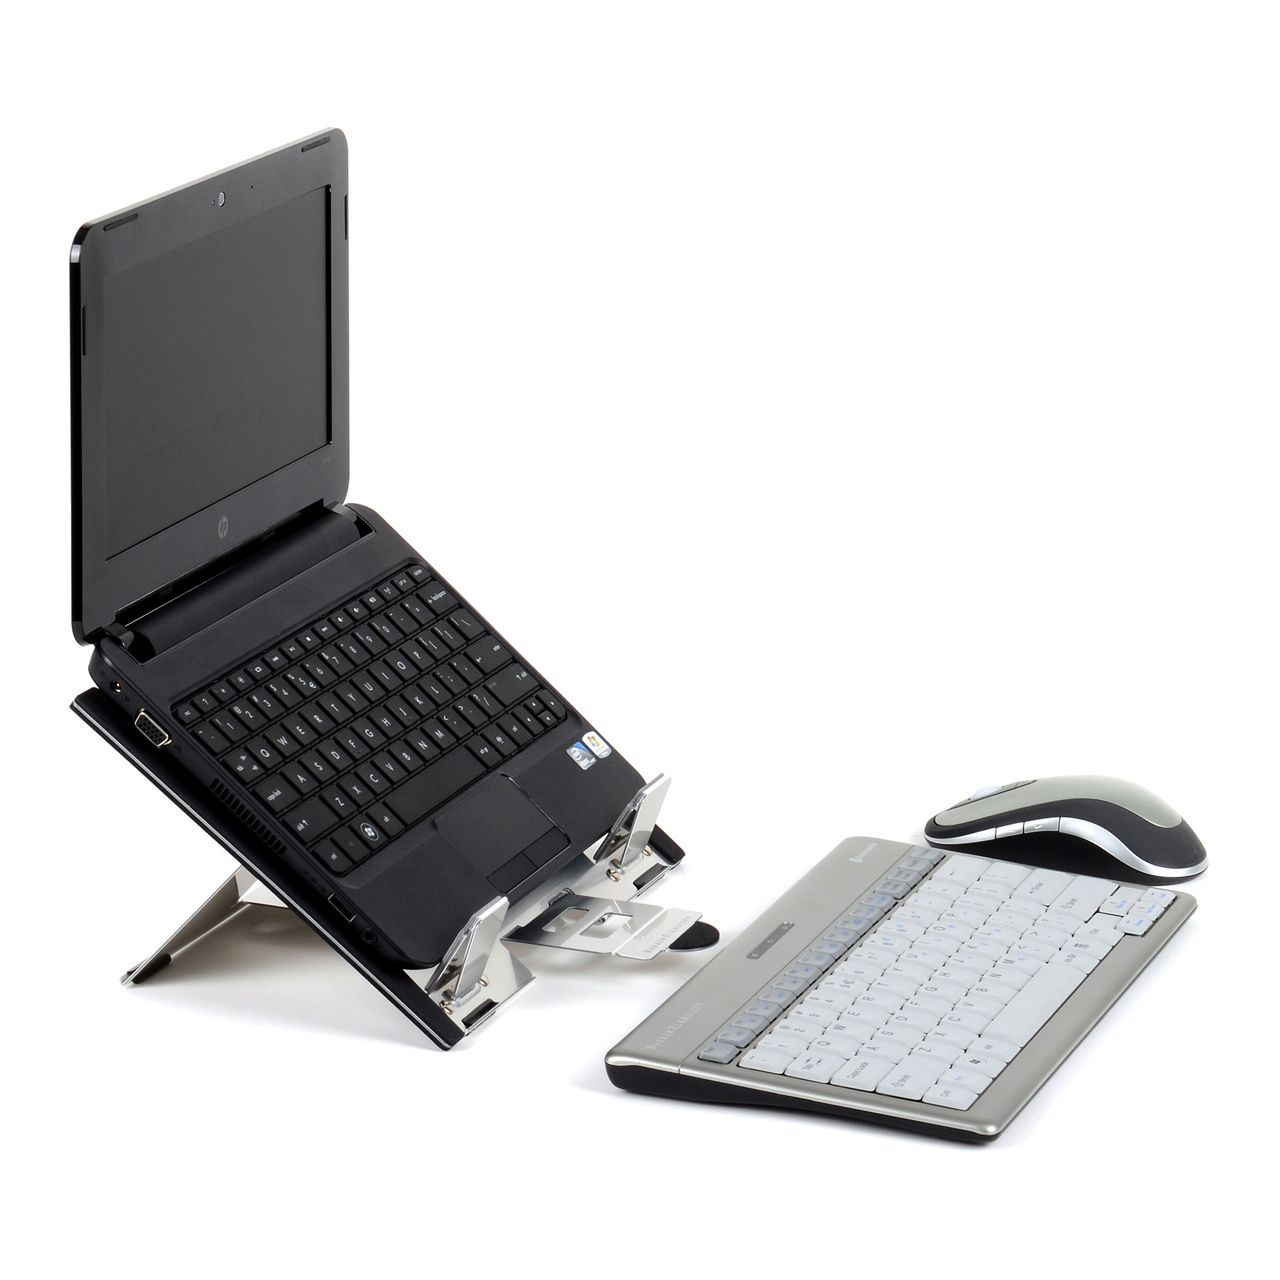 flextop mini laptophouder ERKAFTO31 met laptop